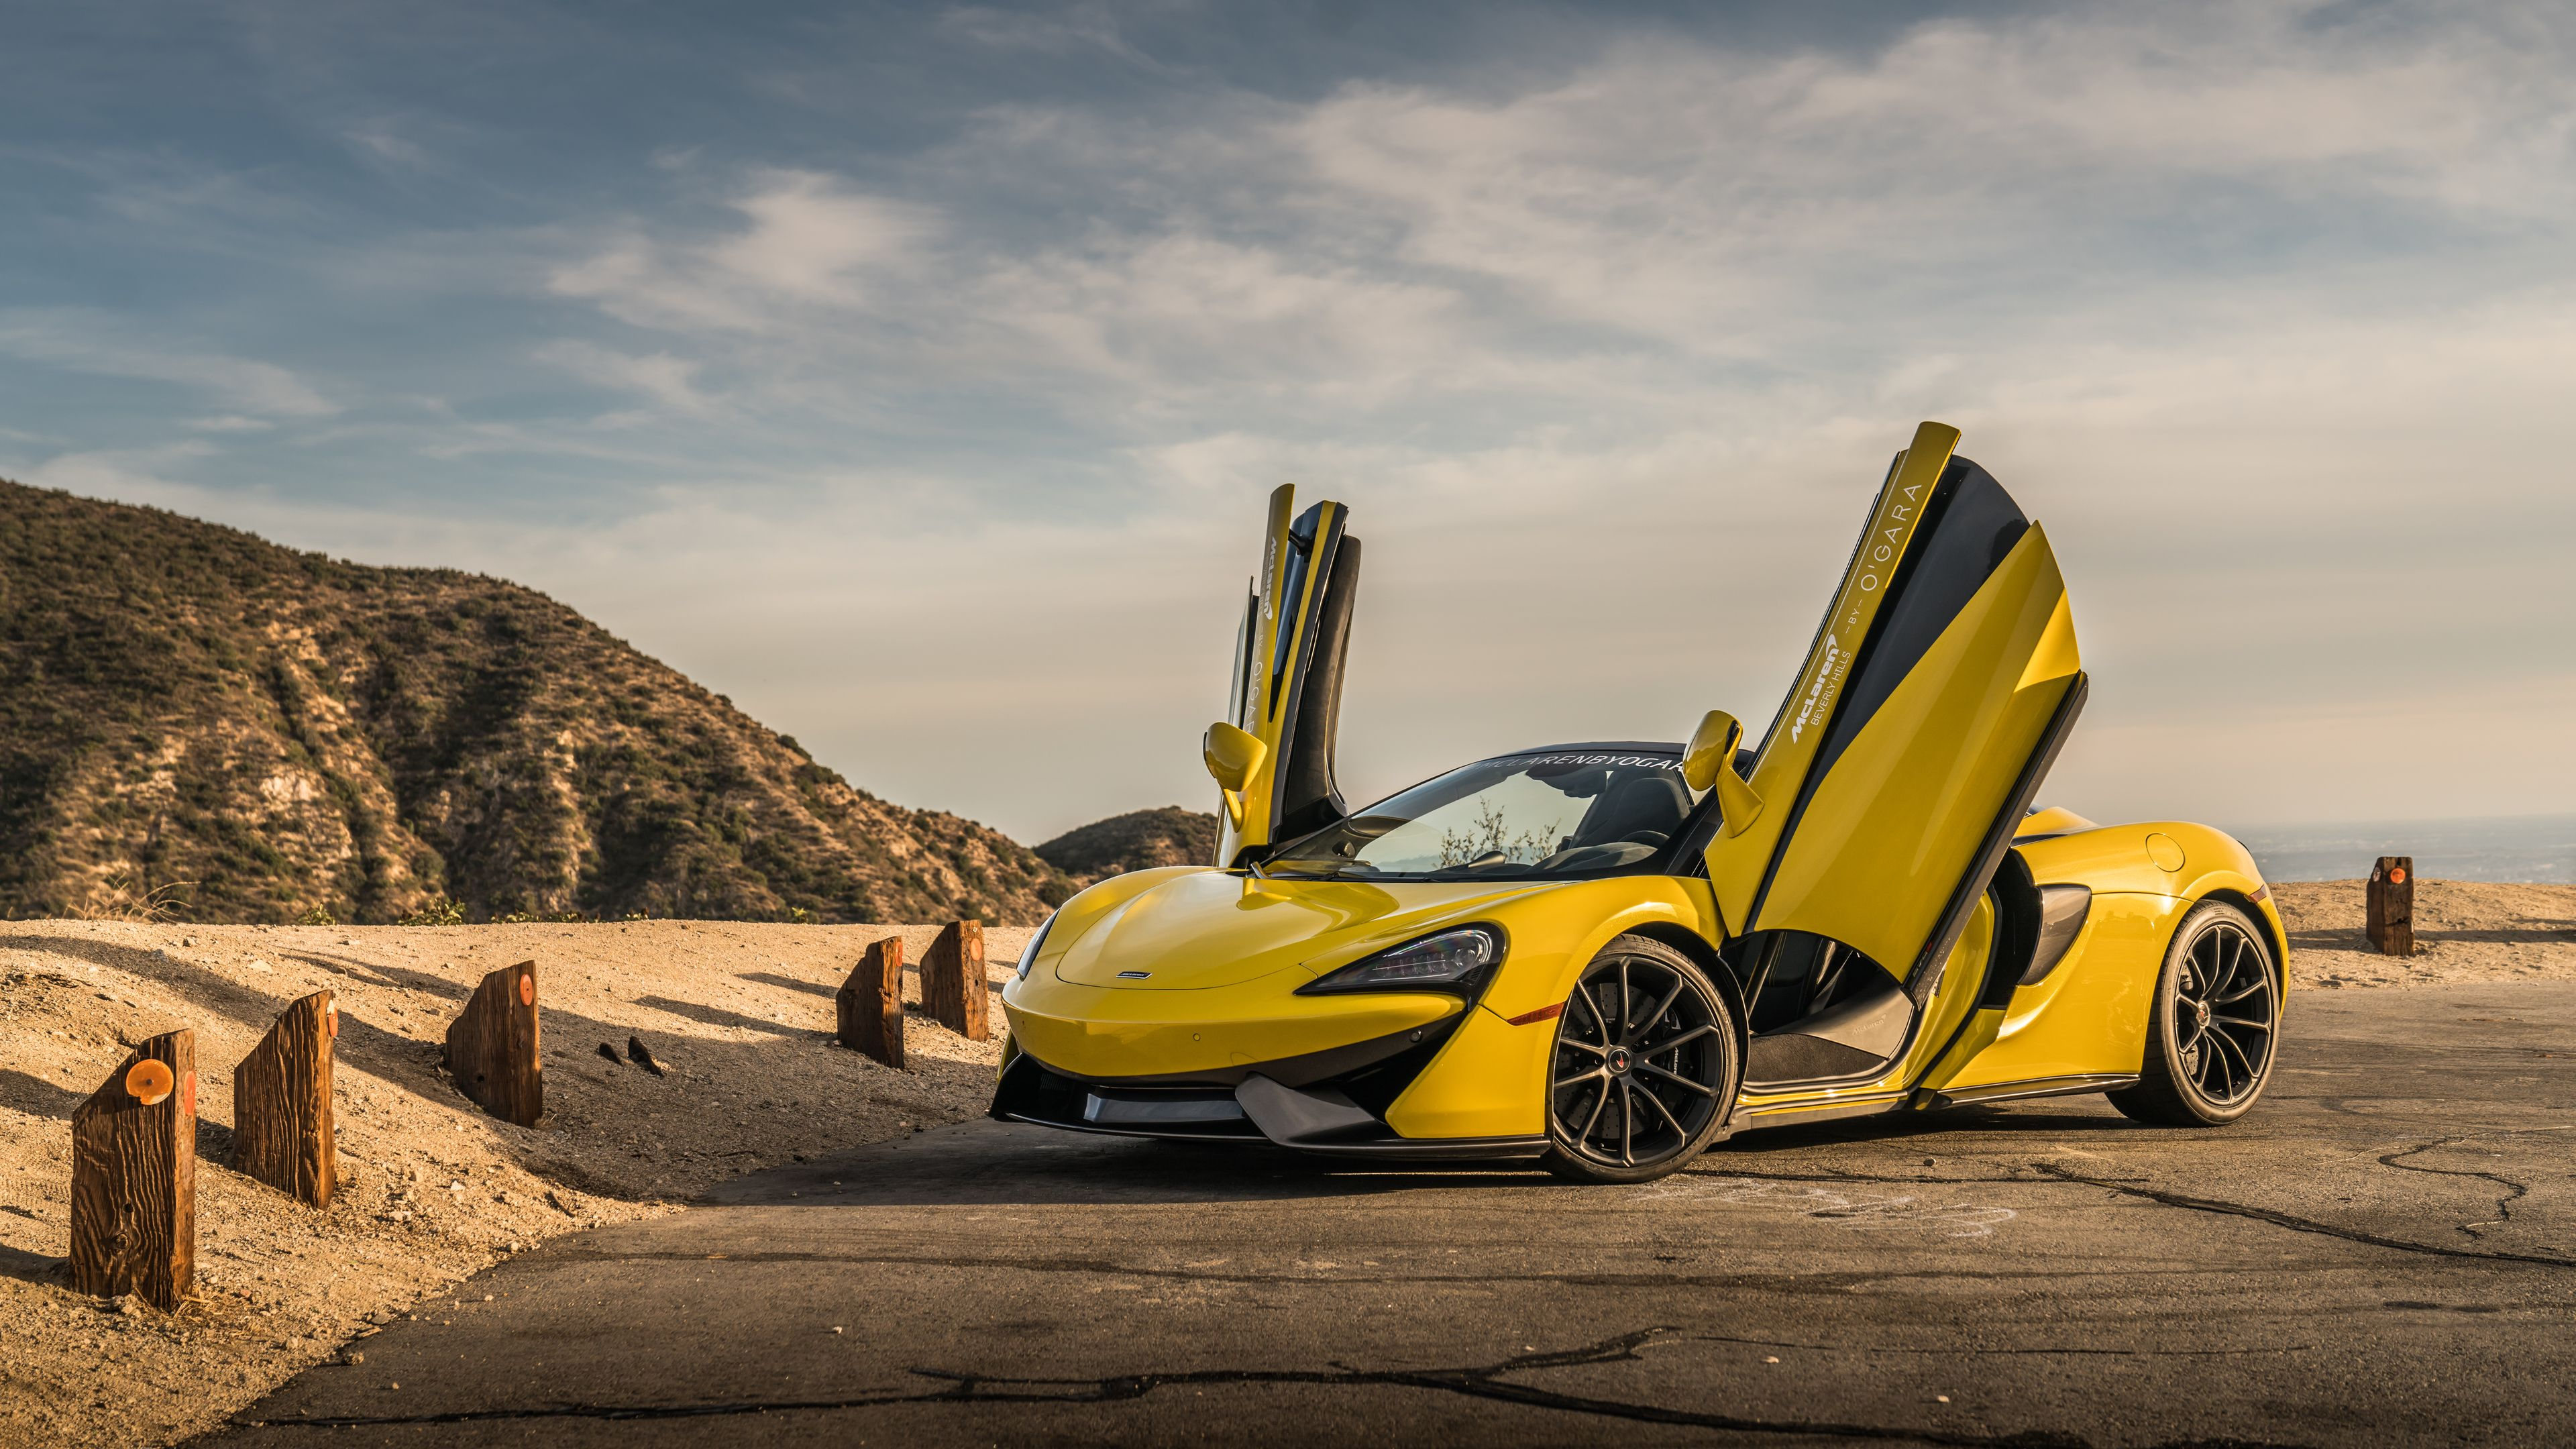 Mclaren 4k Mclaren 4k Wallpaper Mclaren Wallpapers Hd Wallpapers